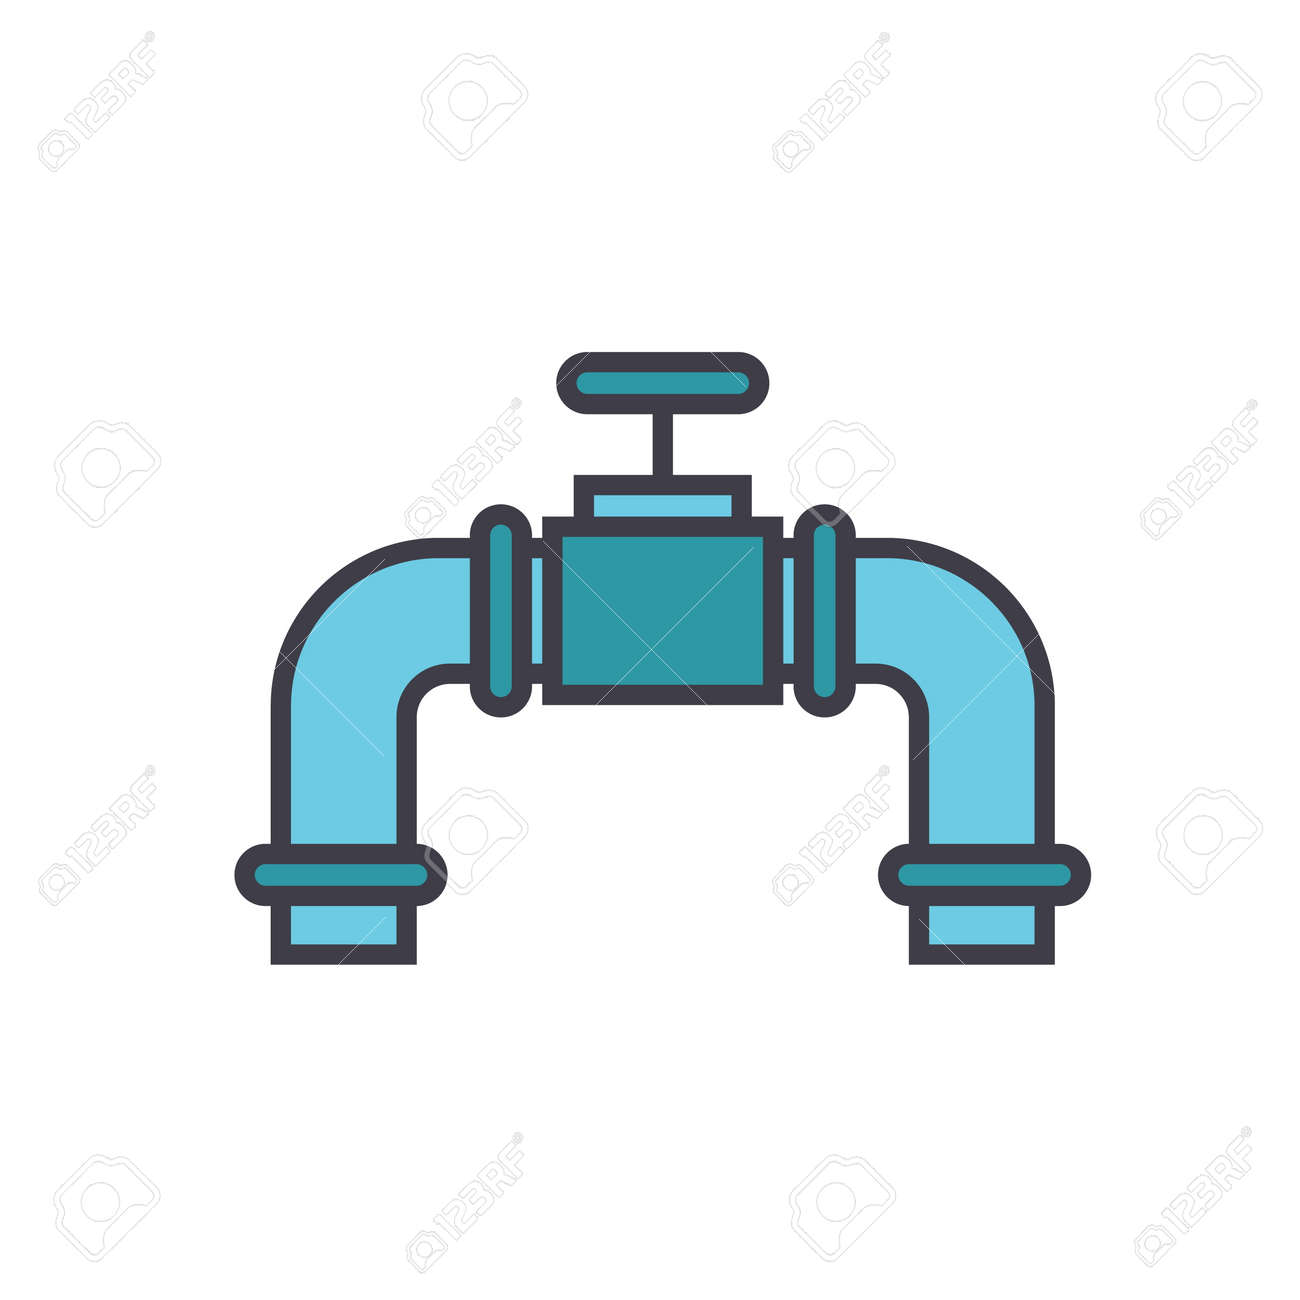 Pipes With Gas Valve Flat Line Illustration Concept Vector Icon